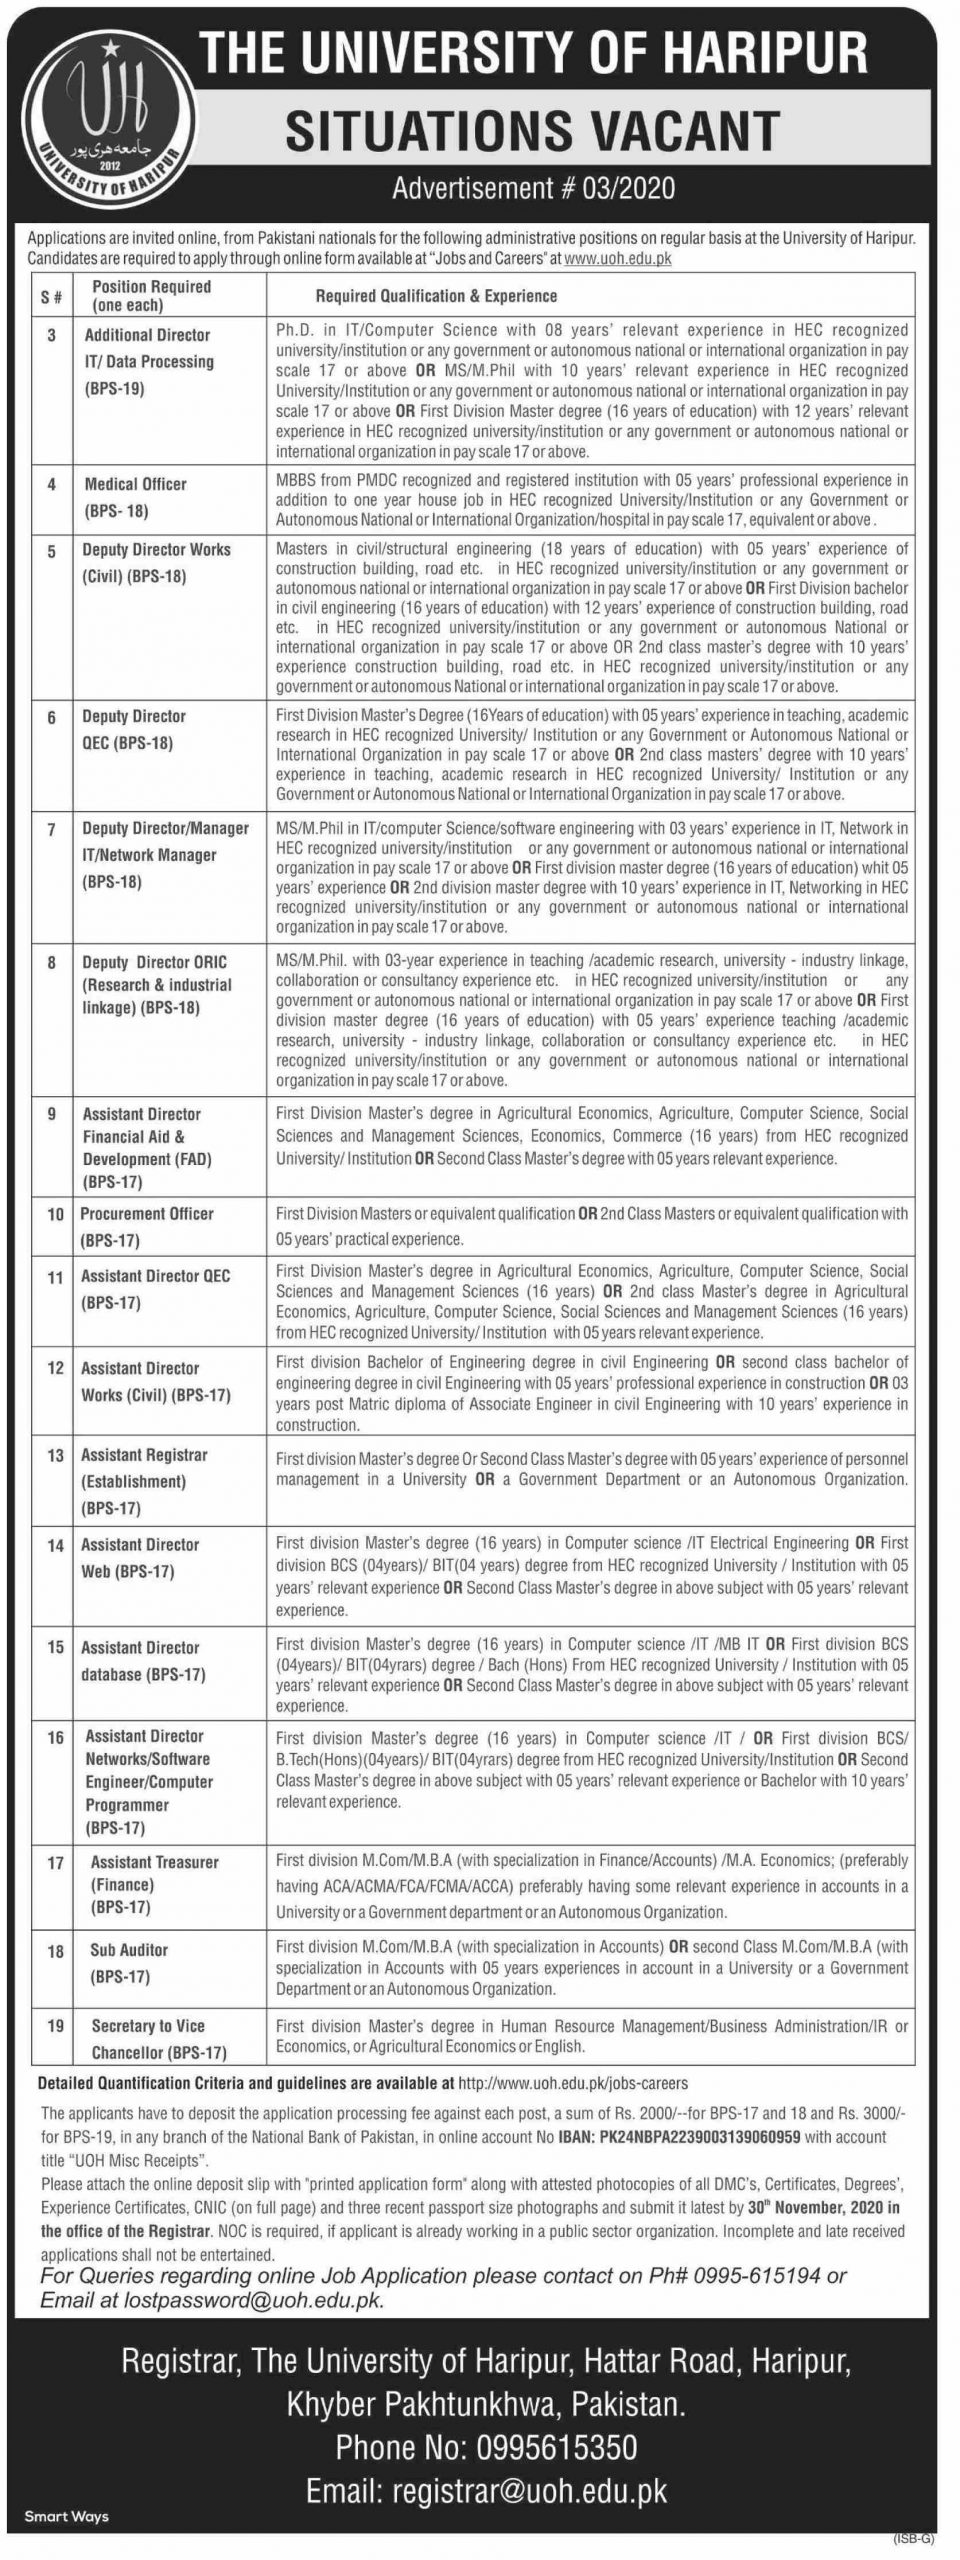 The University of Haripur UOH Jobs November 2020